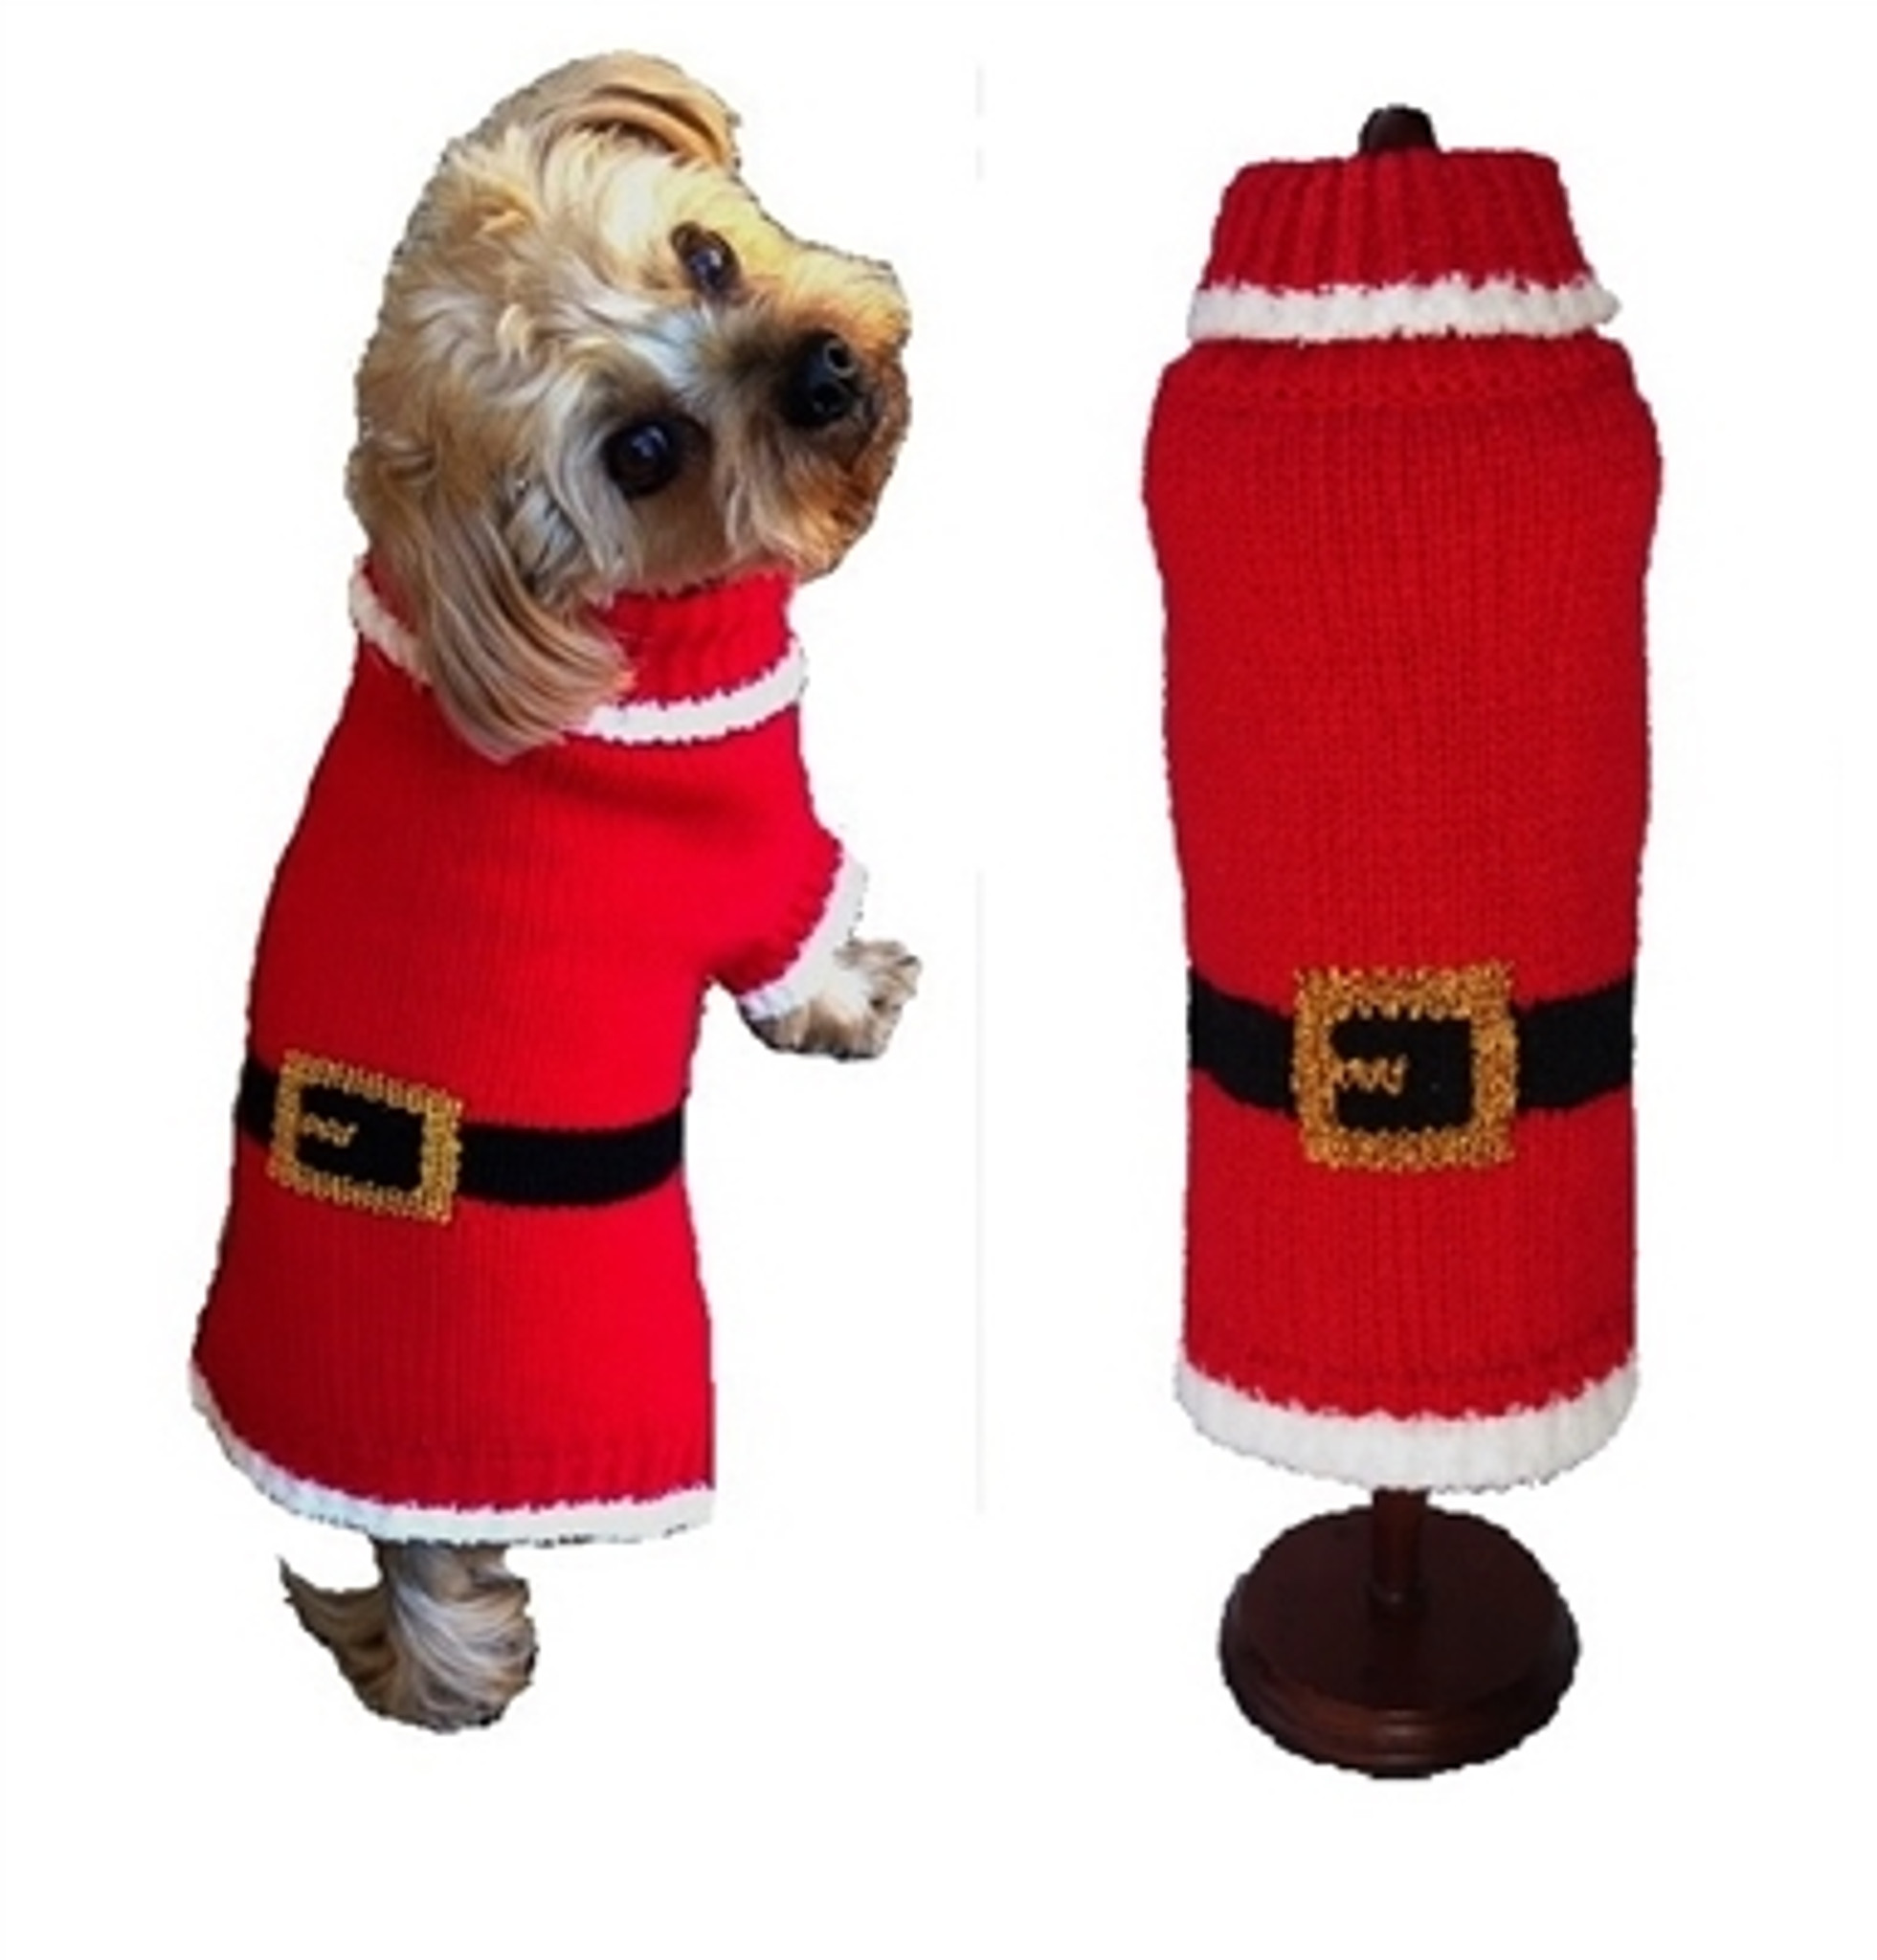 Christmas Sweaters For Dogs.Santa Paws Christmas Sweater